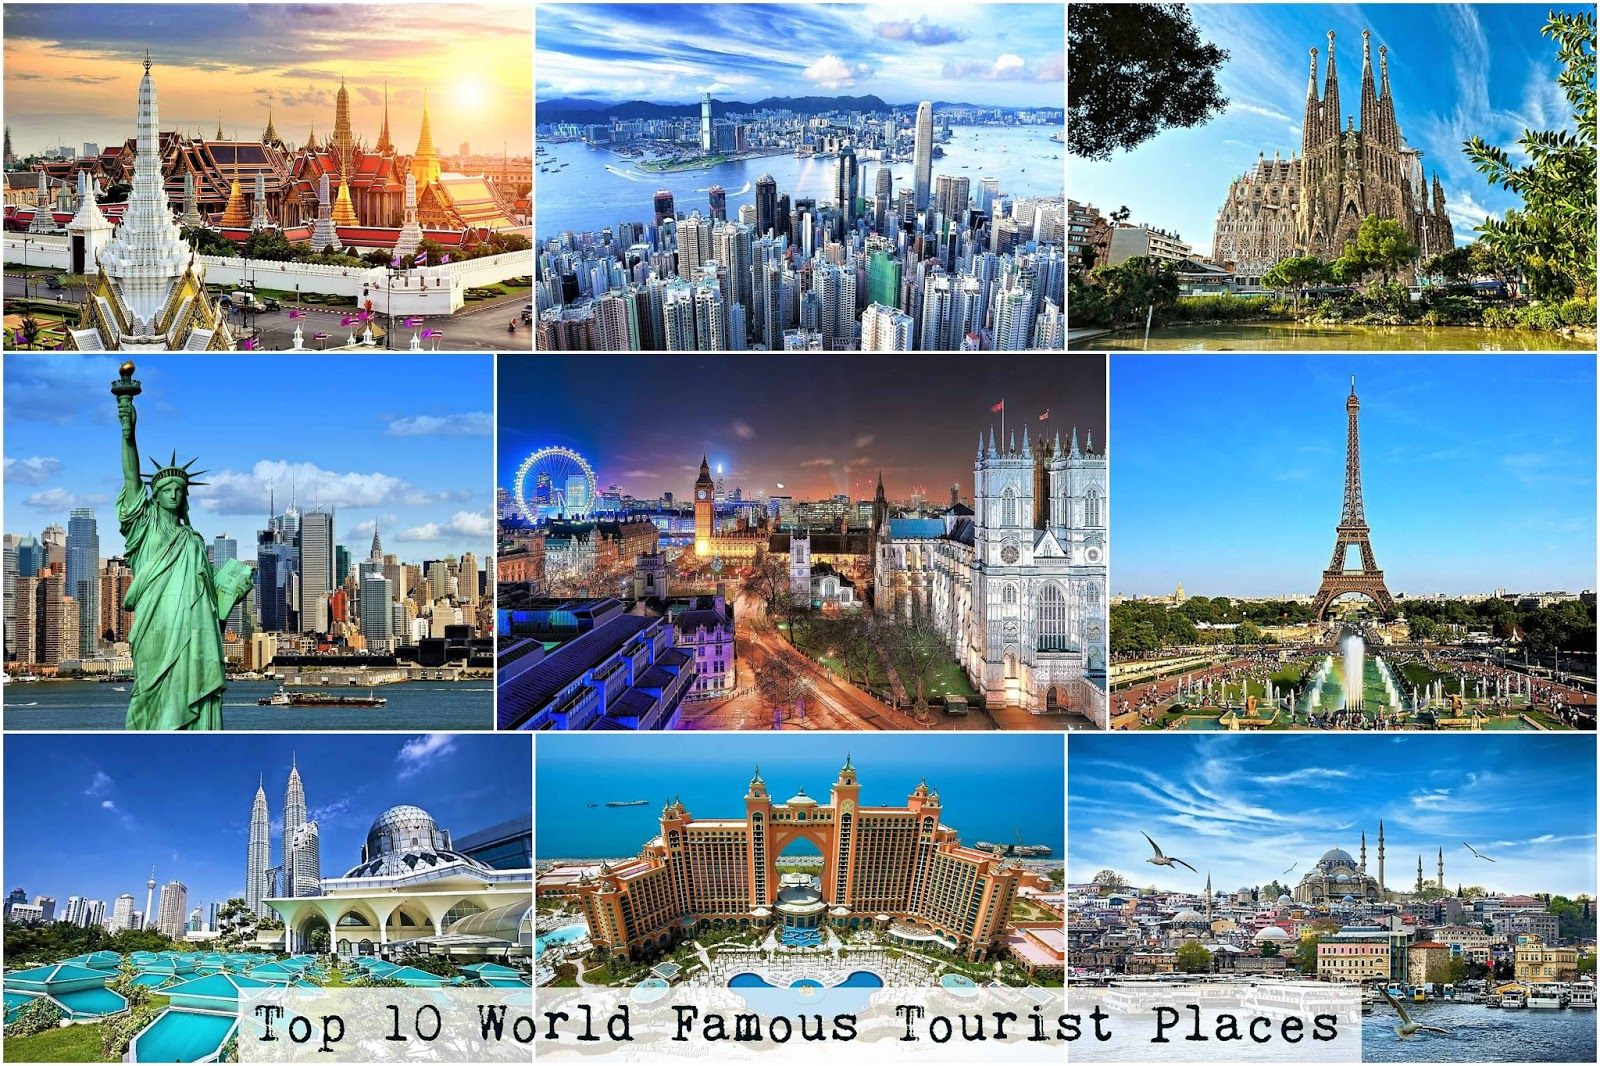 top 10 tourist attractions in the world 2017